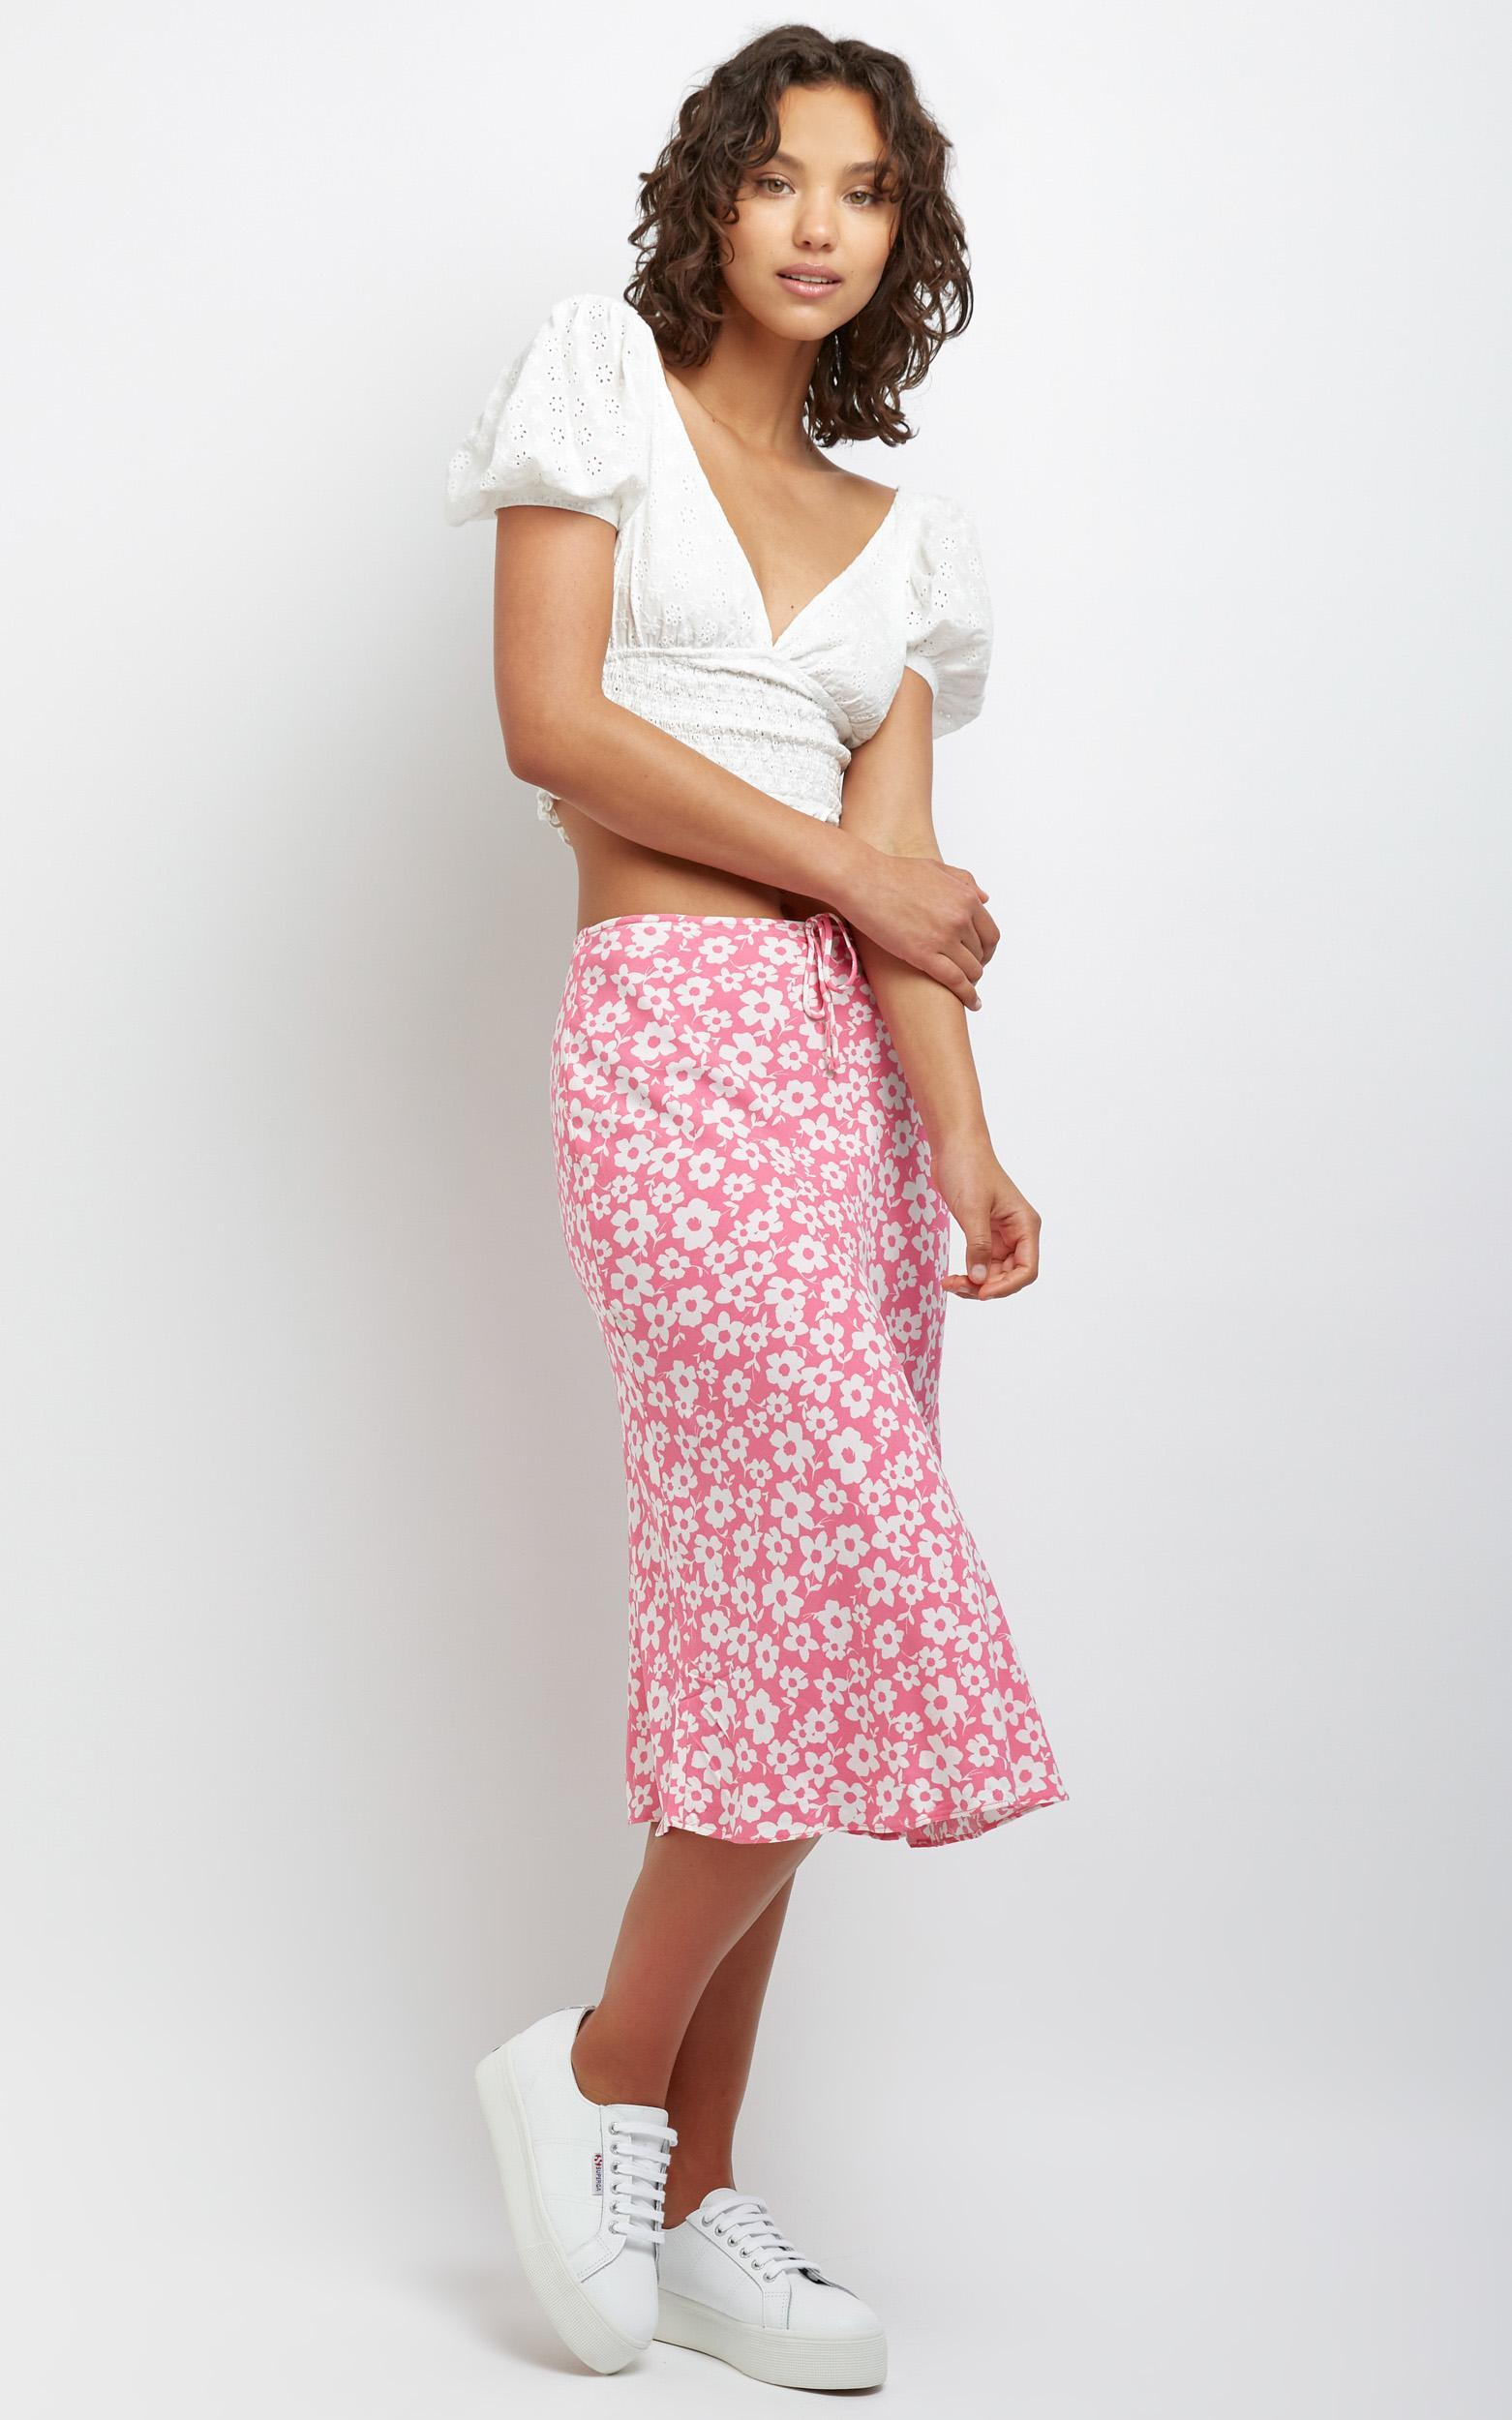 Kentucky Skirt in pink - 8 (S), PNK1, hi-res image number null